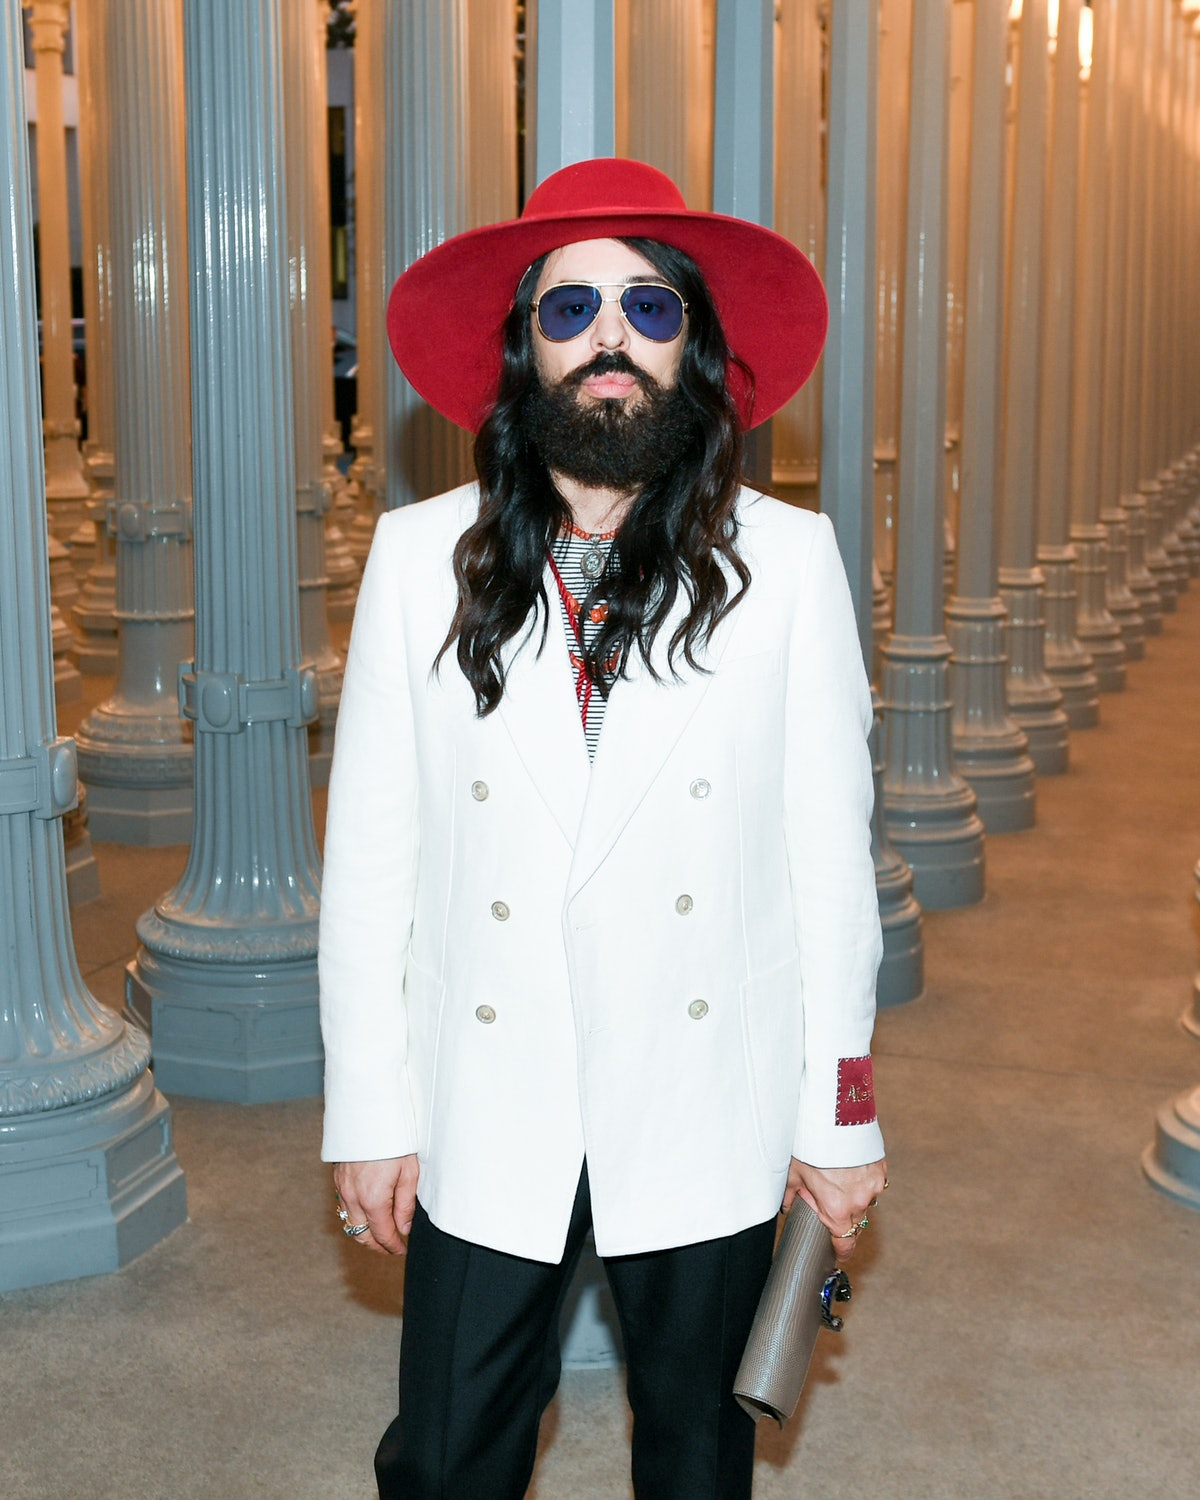 Alessandro Michele at the 2019 LACMA Art + Film Gala in Los Angeles on November 2, 2019.